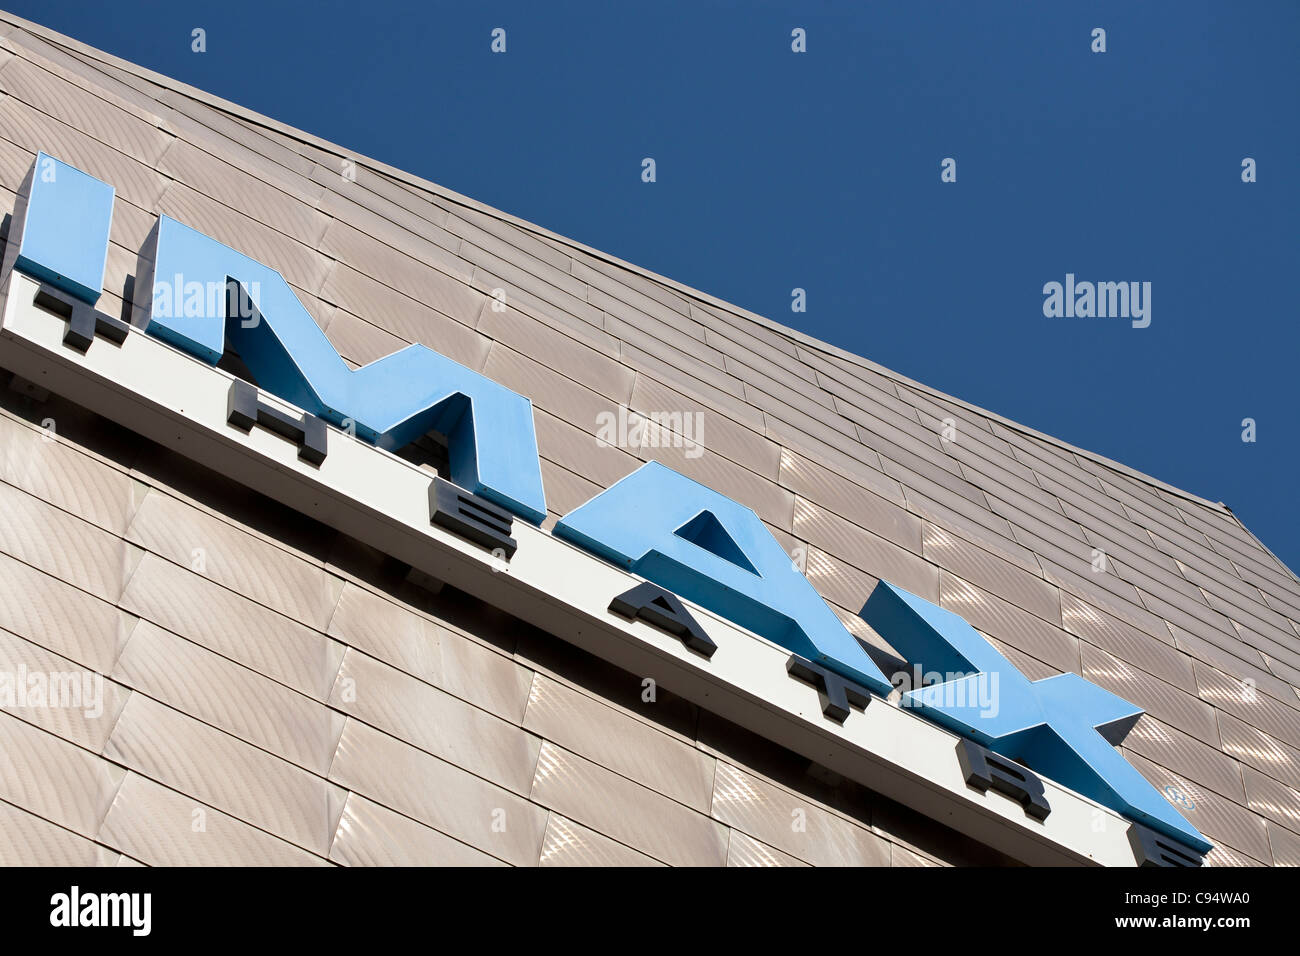 IMAX Theatre Facade. The stainless steel cladding and the sign for the large format theatre located on the Boston - Stock Image